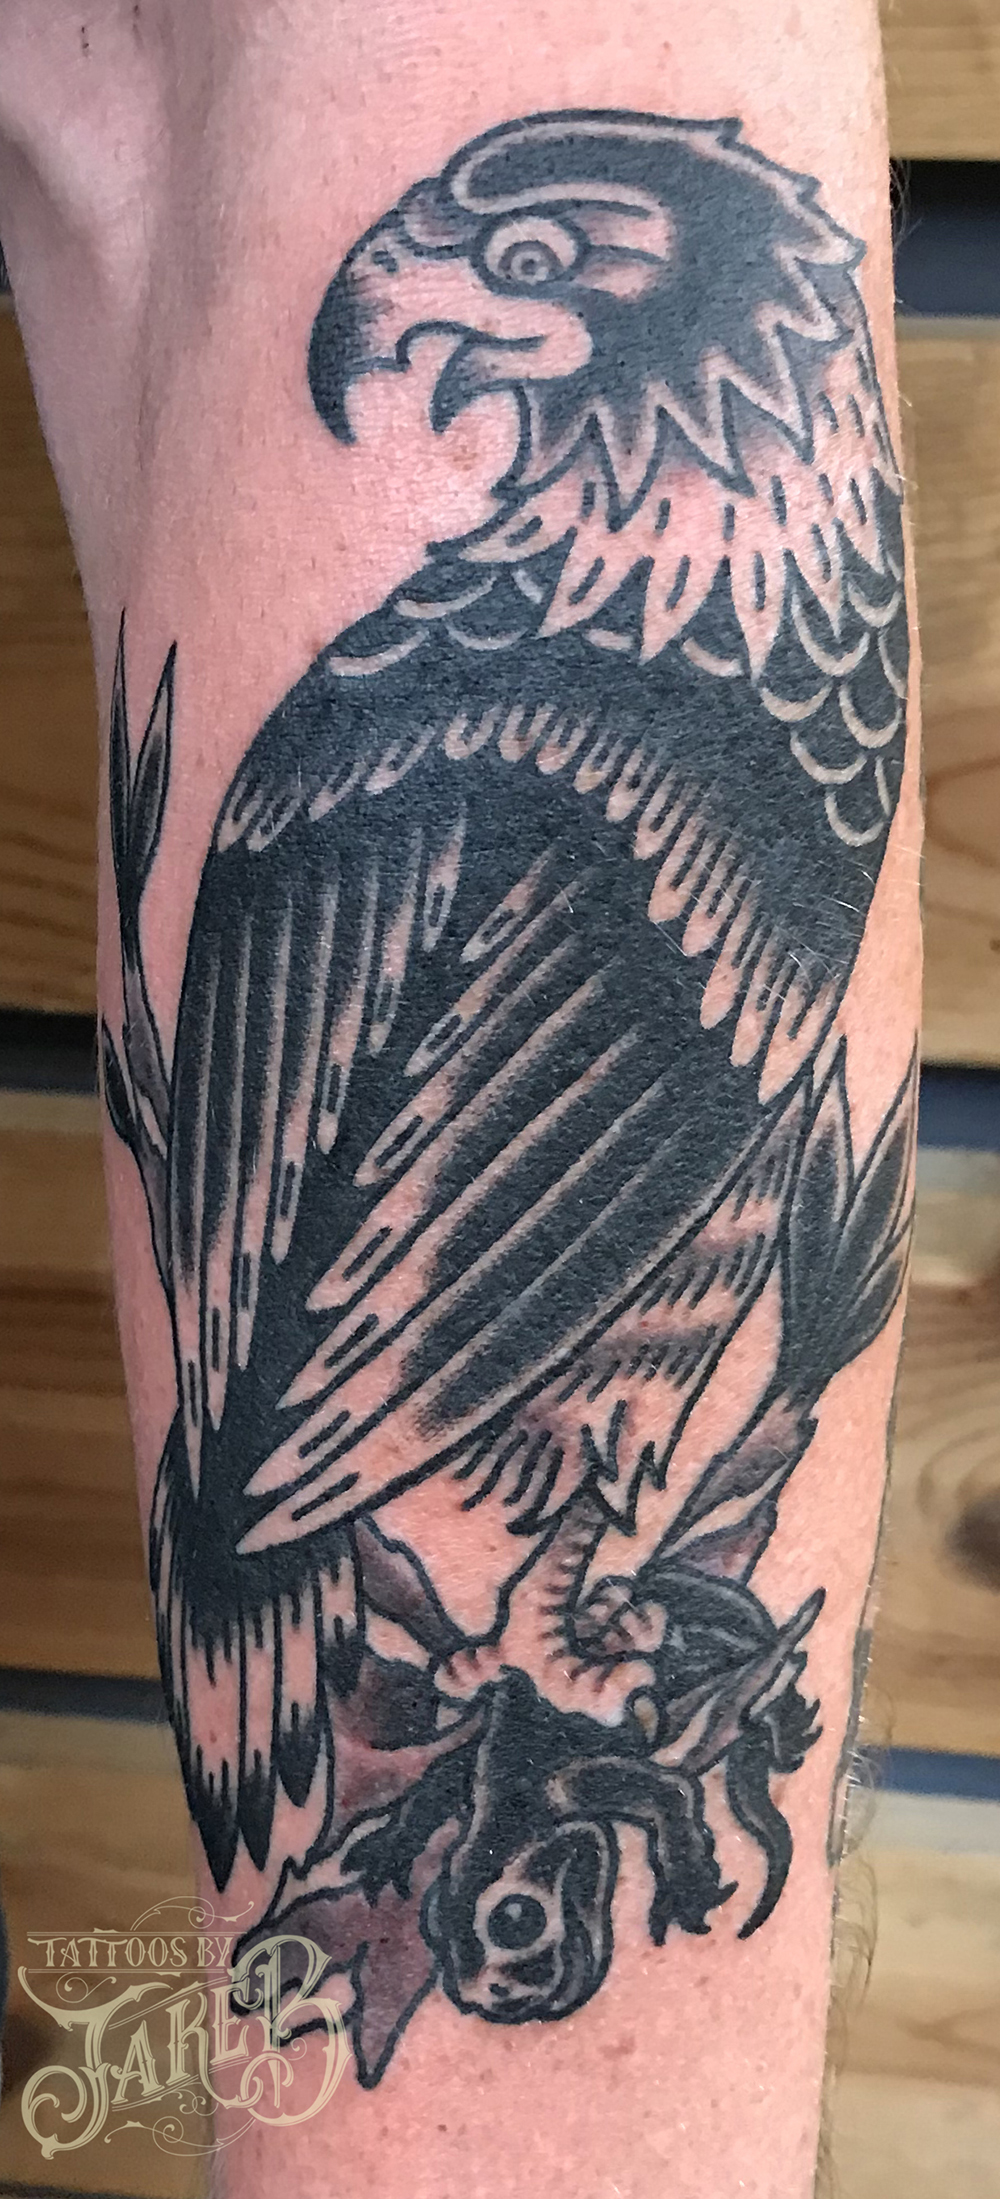 Black & grey falcon tattoo by Jake B